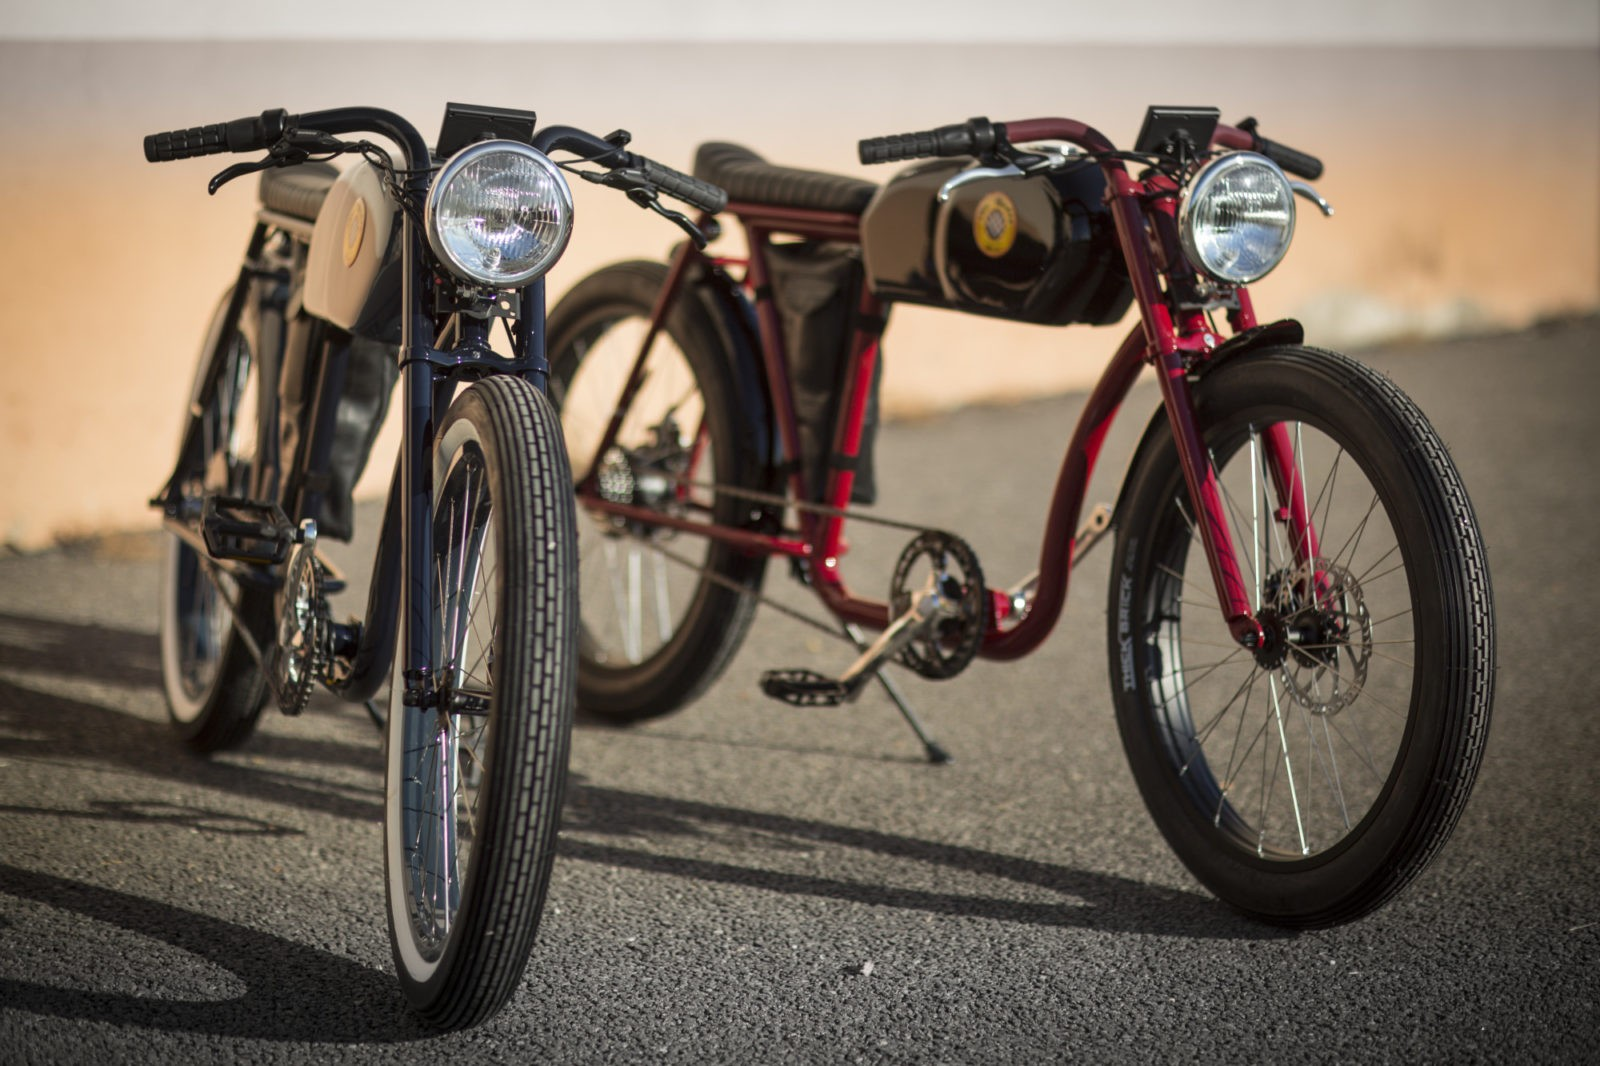 Build A Honda >> E-Bike Cafe Racer by Oto Cycles | BikeBrewers.com